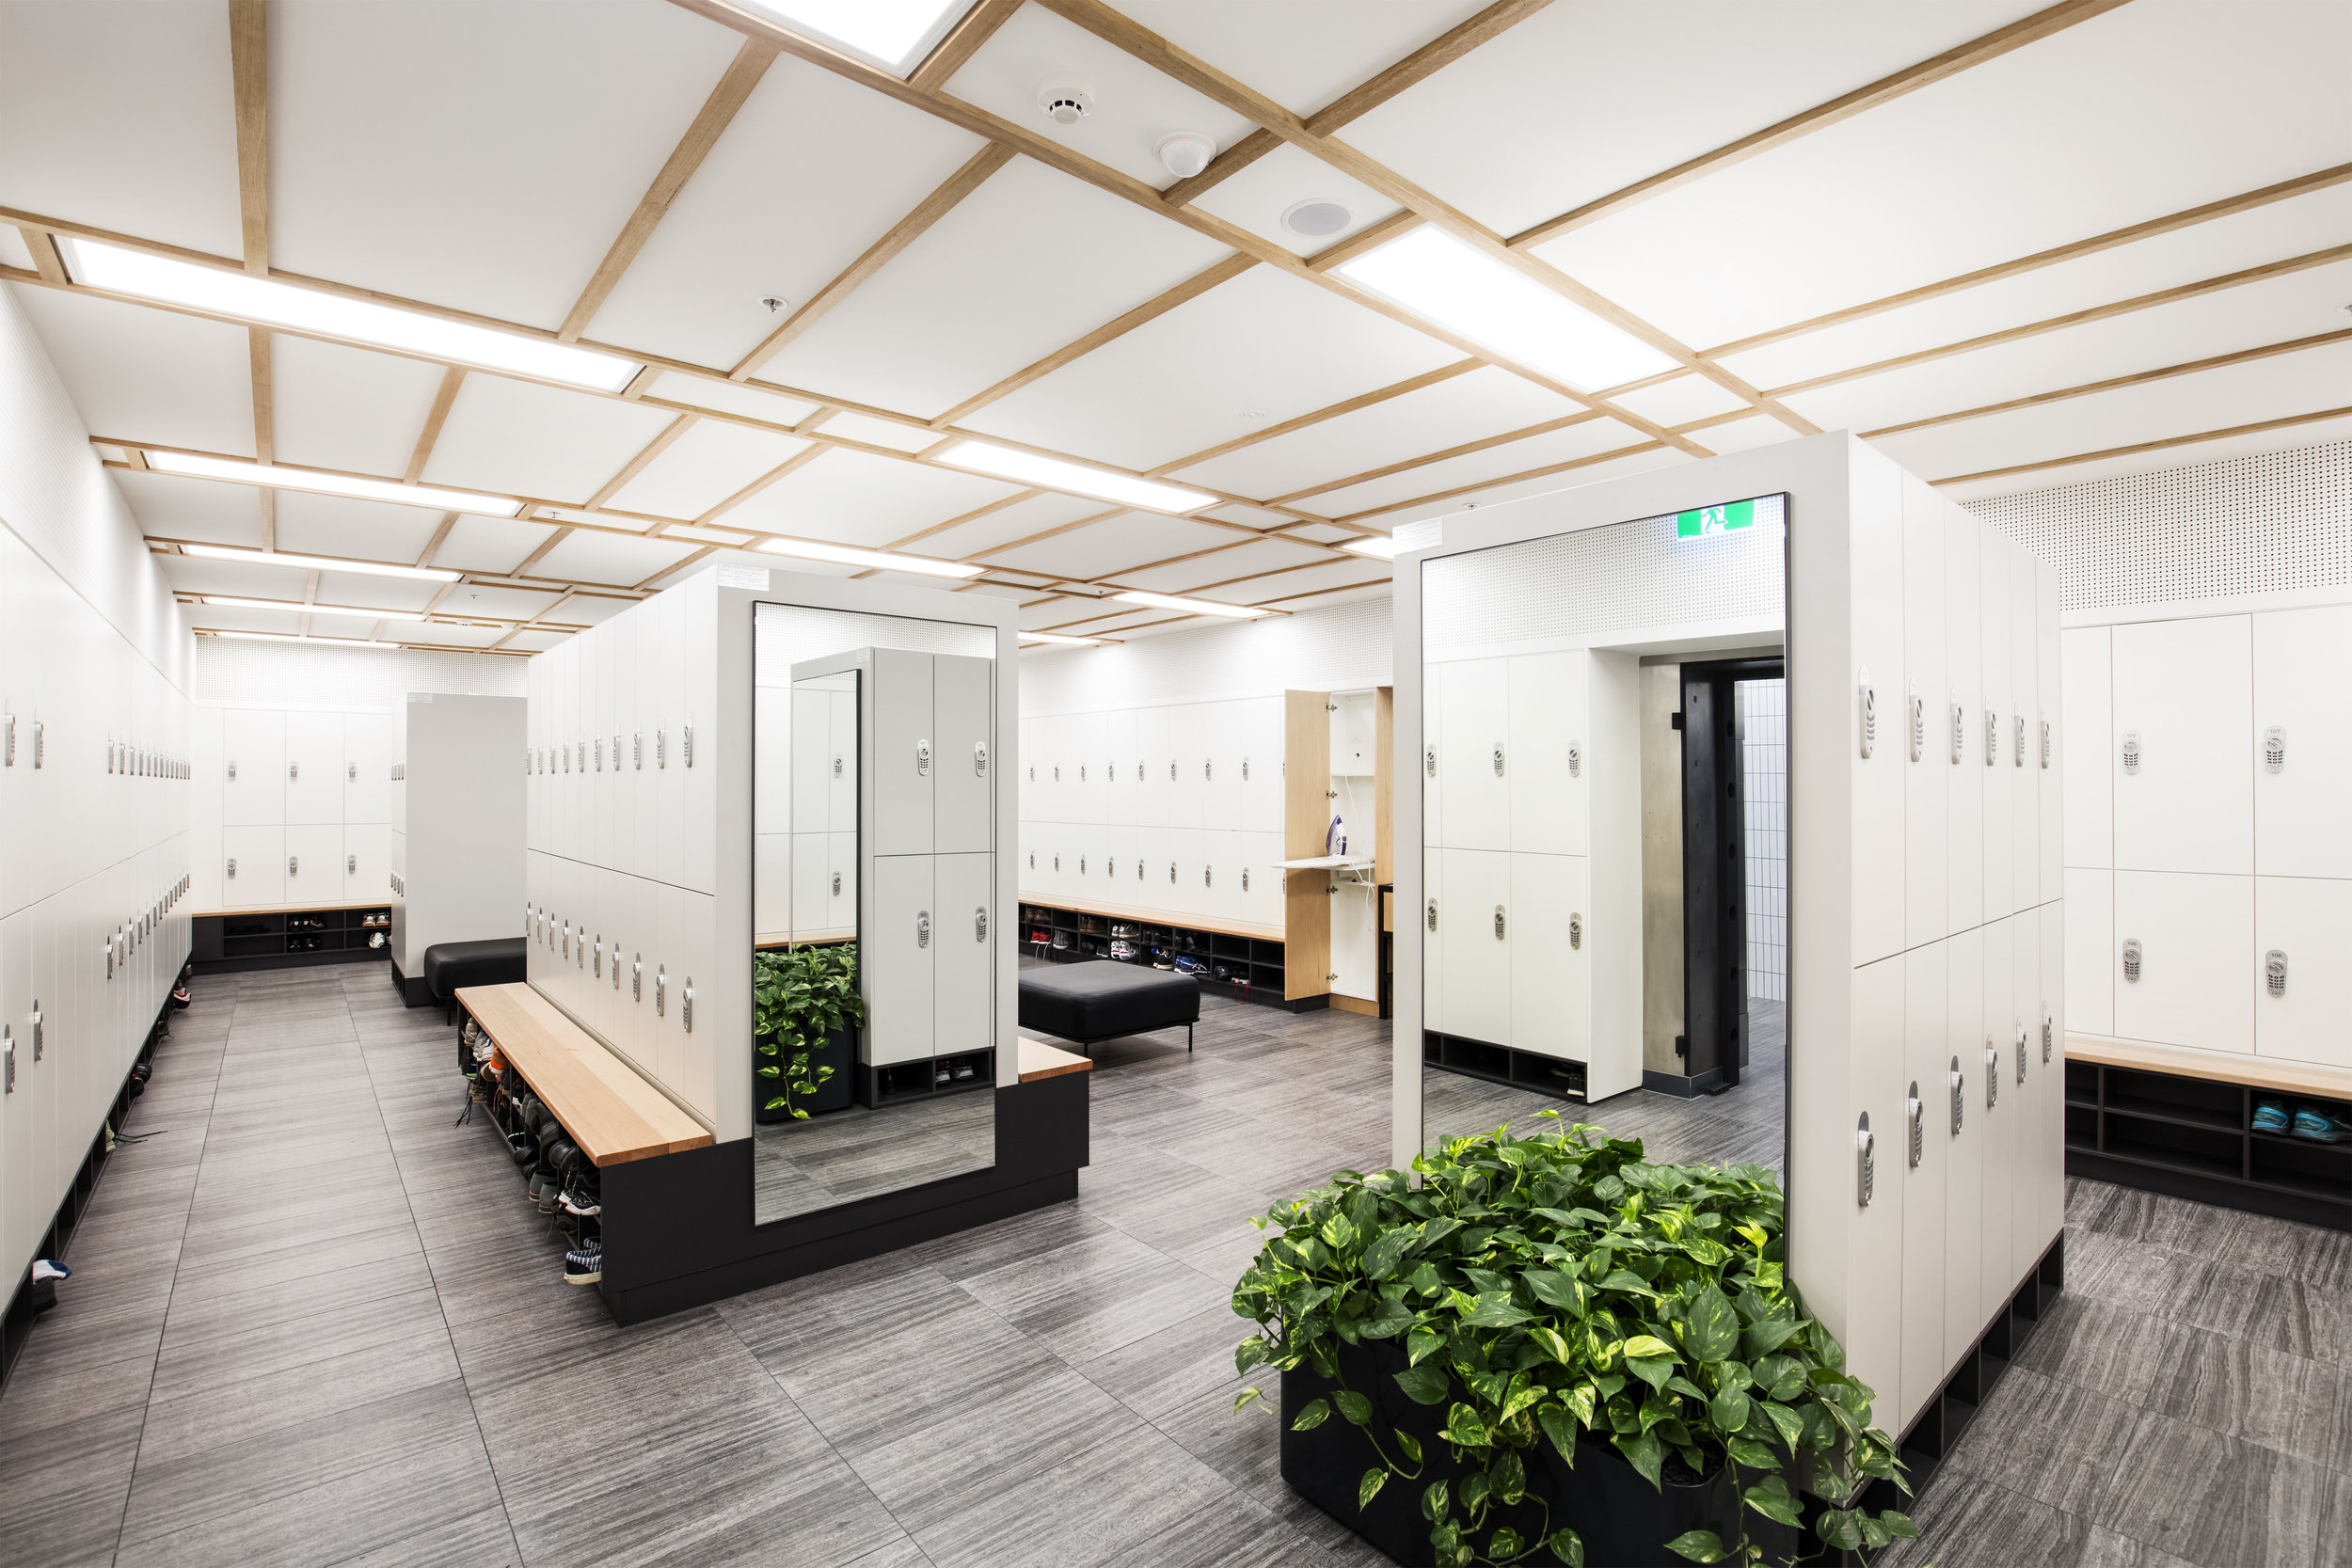 BATHROOM & CHANGE ROOM DETAILING   Our bathroom or change room detailing service is imperative to maintain your workplace environment. From hed